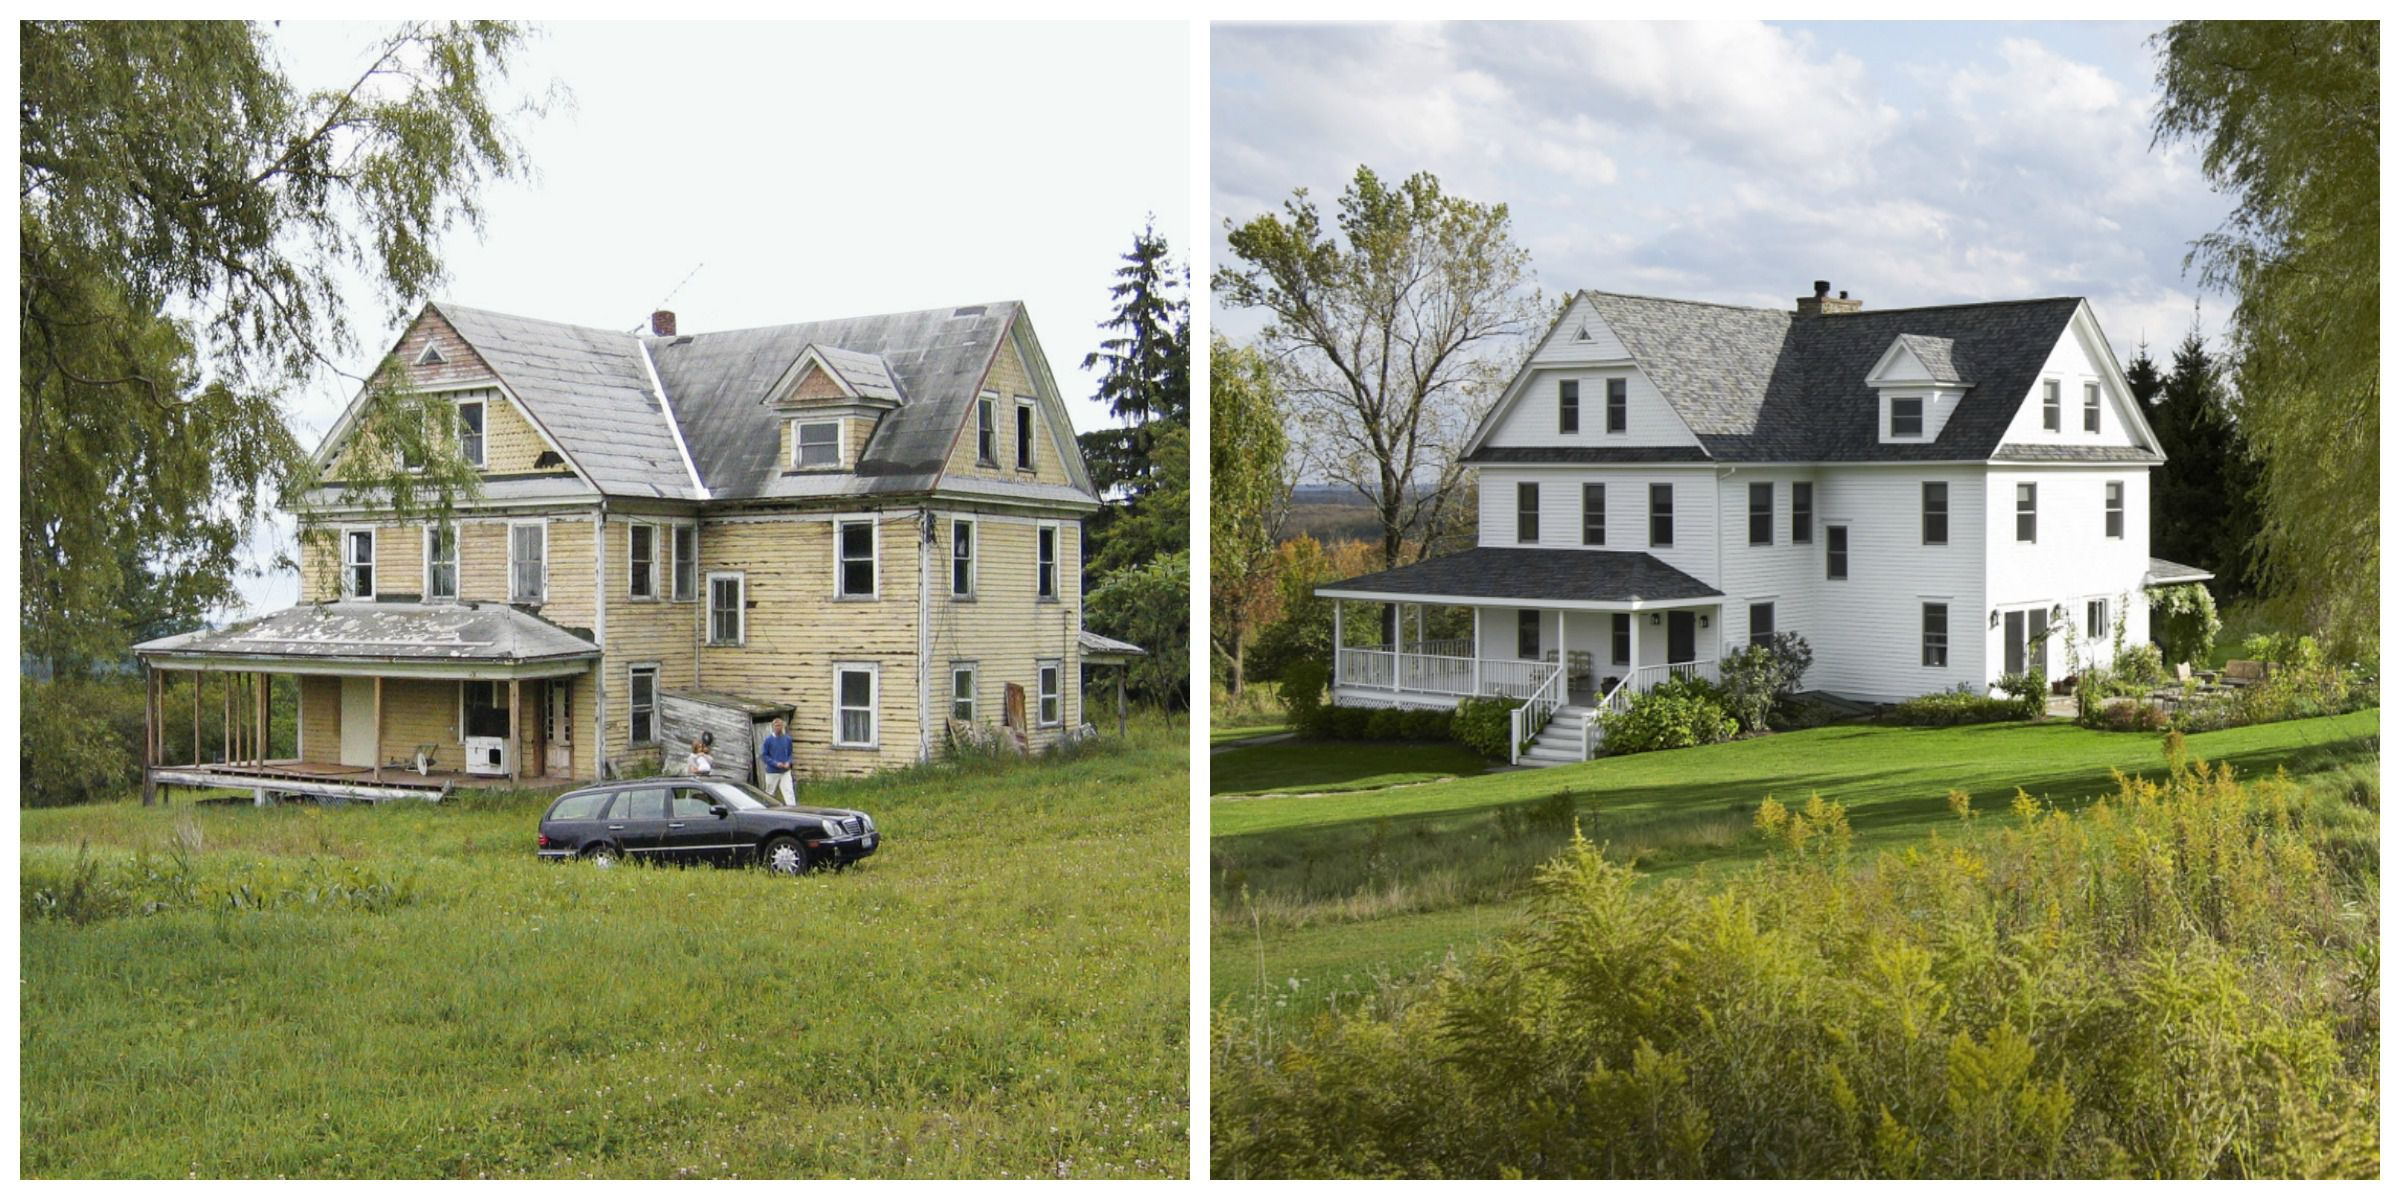 Planning Your Old House Makeover - Construction and Remodeling Advice